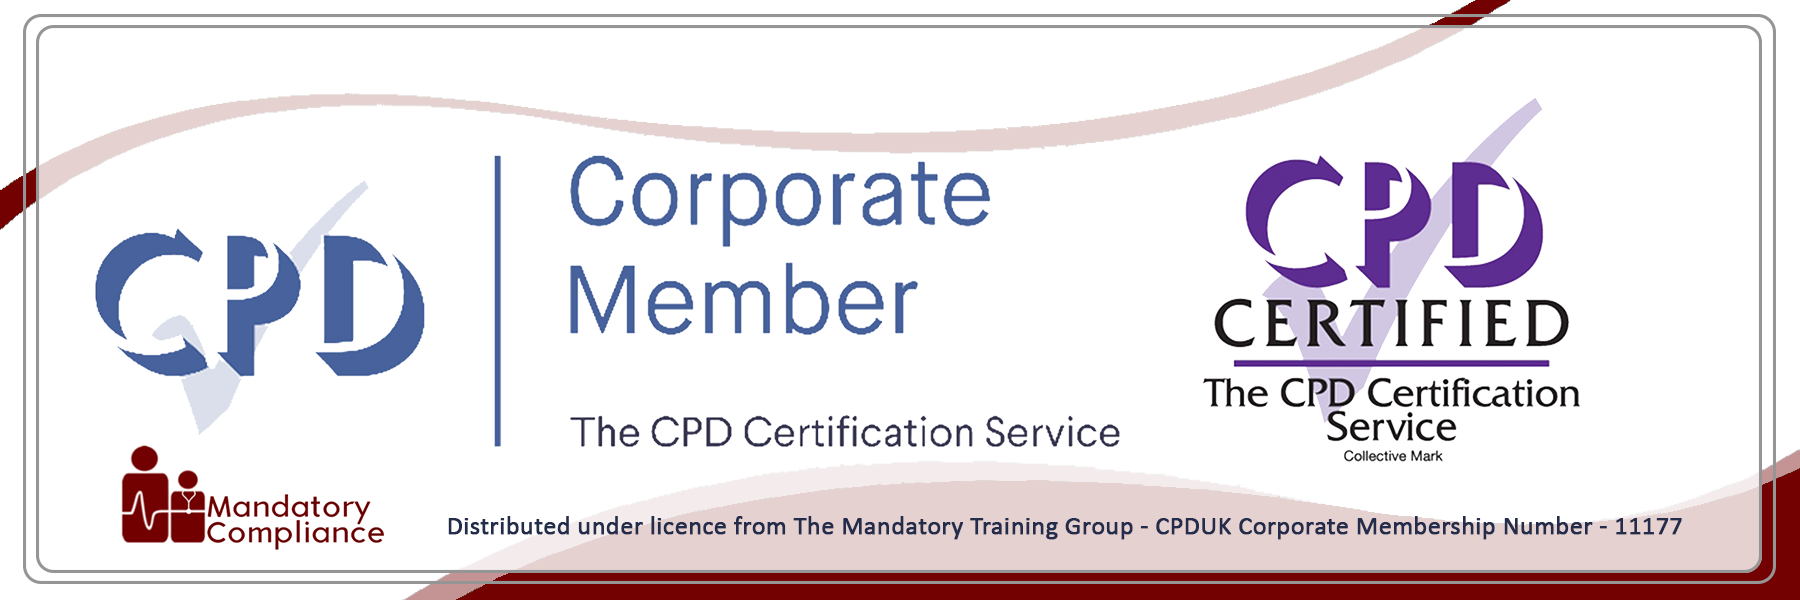 Business Ethics - Online Training Course - CPDUK Accredited - Mandatory Compliance UK -